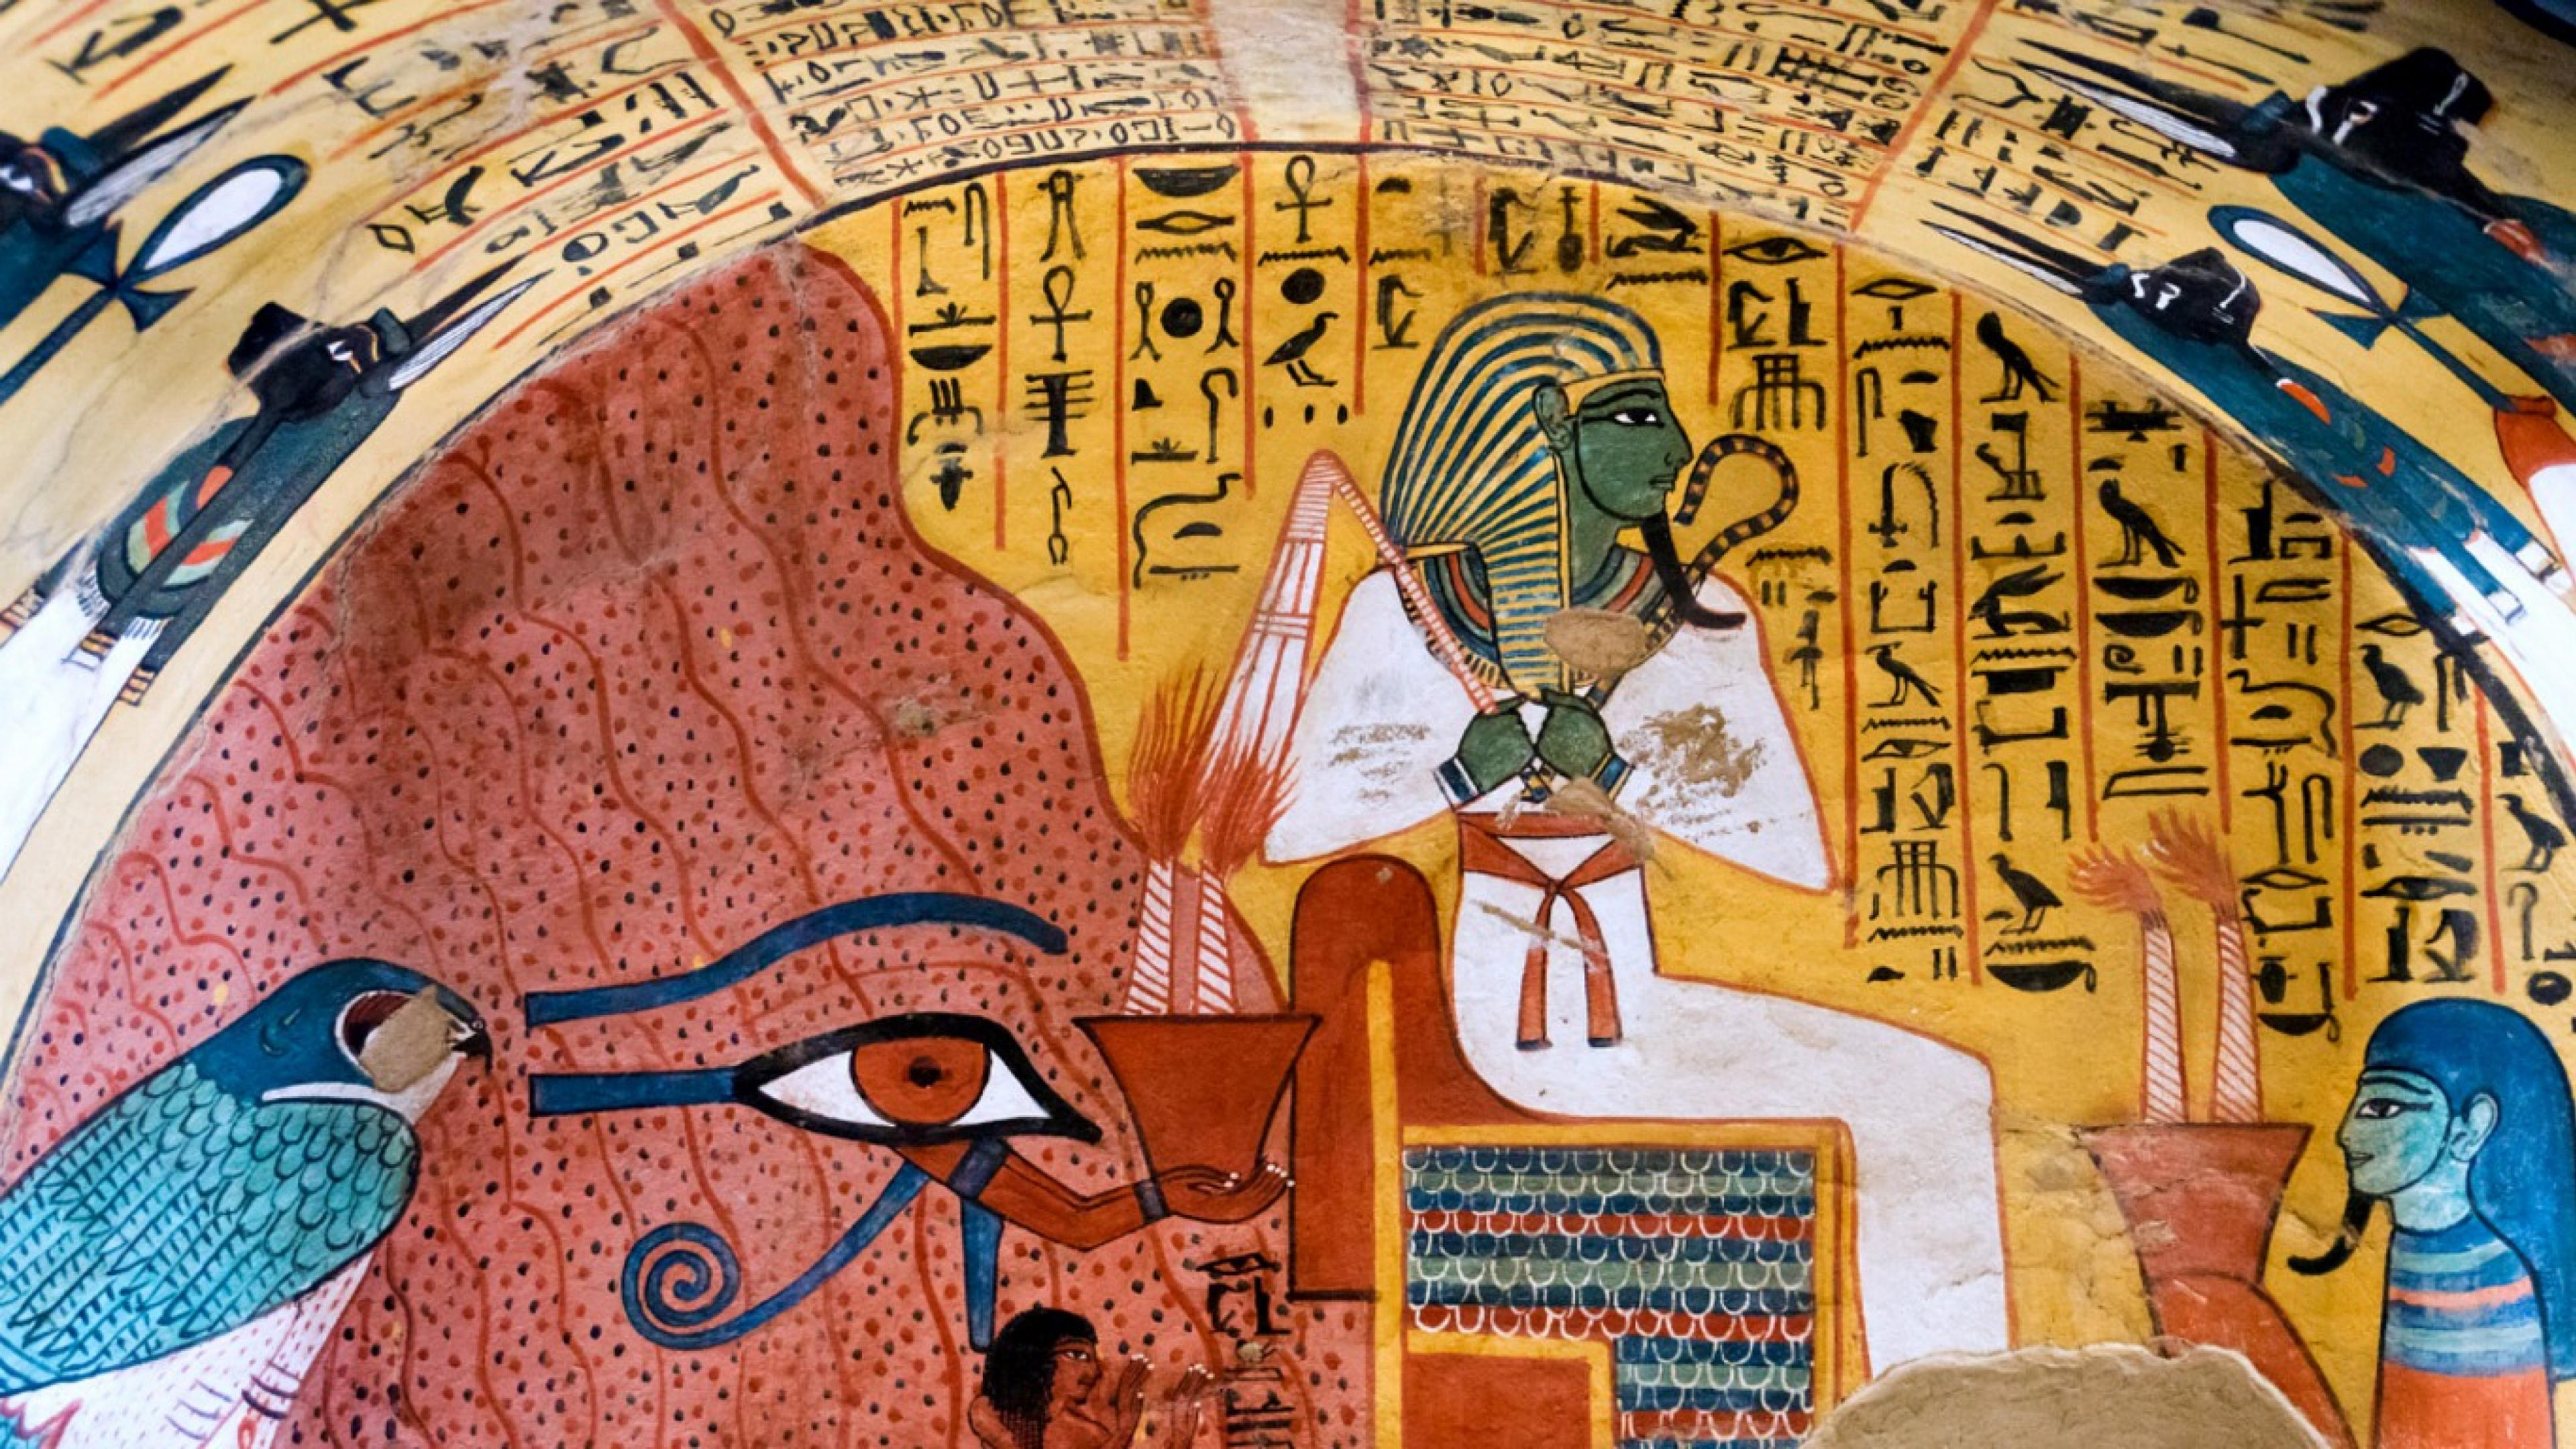 wall_painting_art_egypt_hieroglyphics_tomb_ultra_3840x2160_hd-wallpaper-1798162